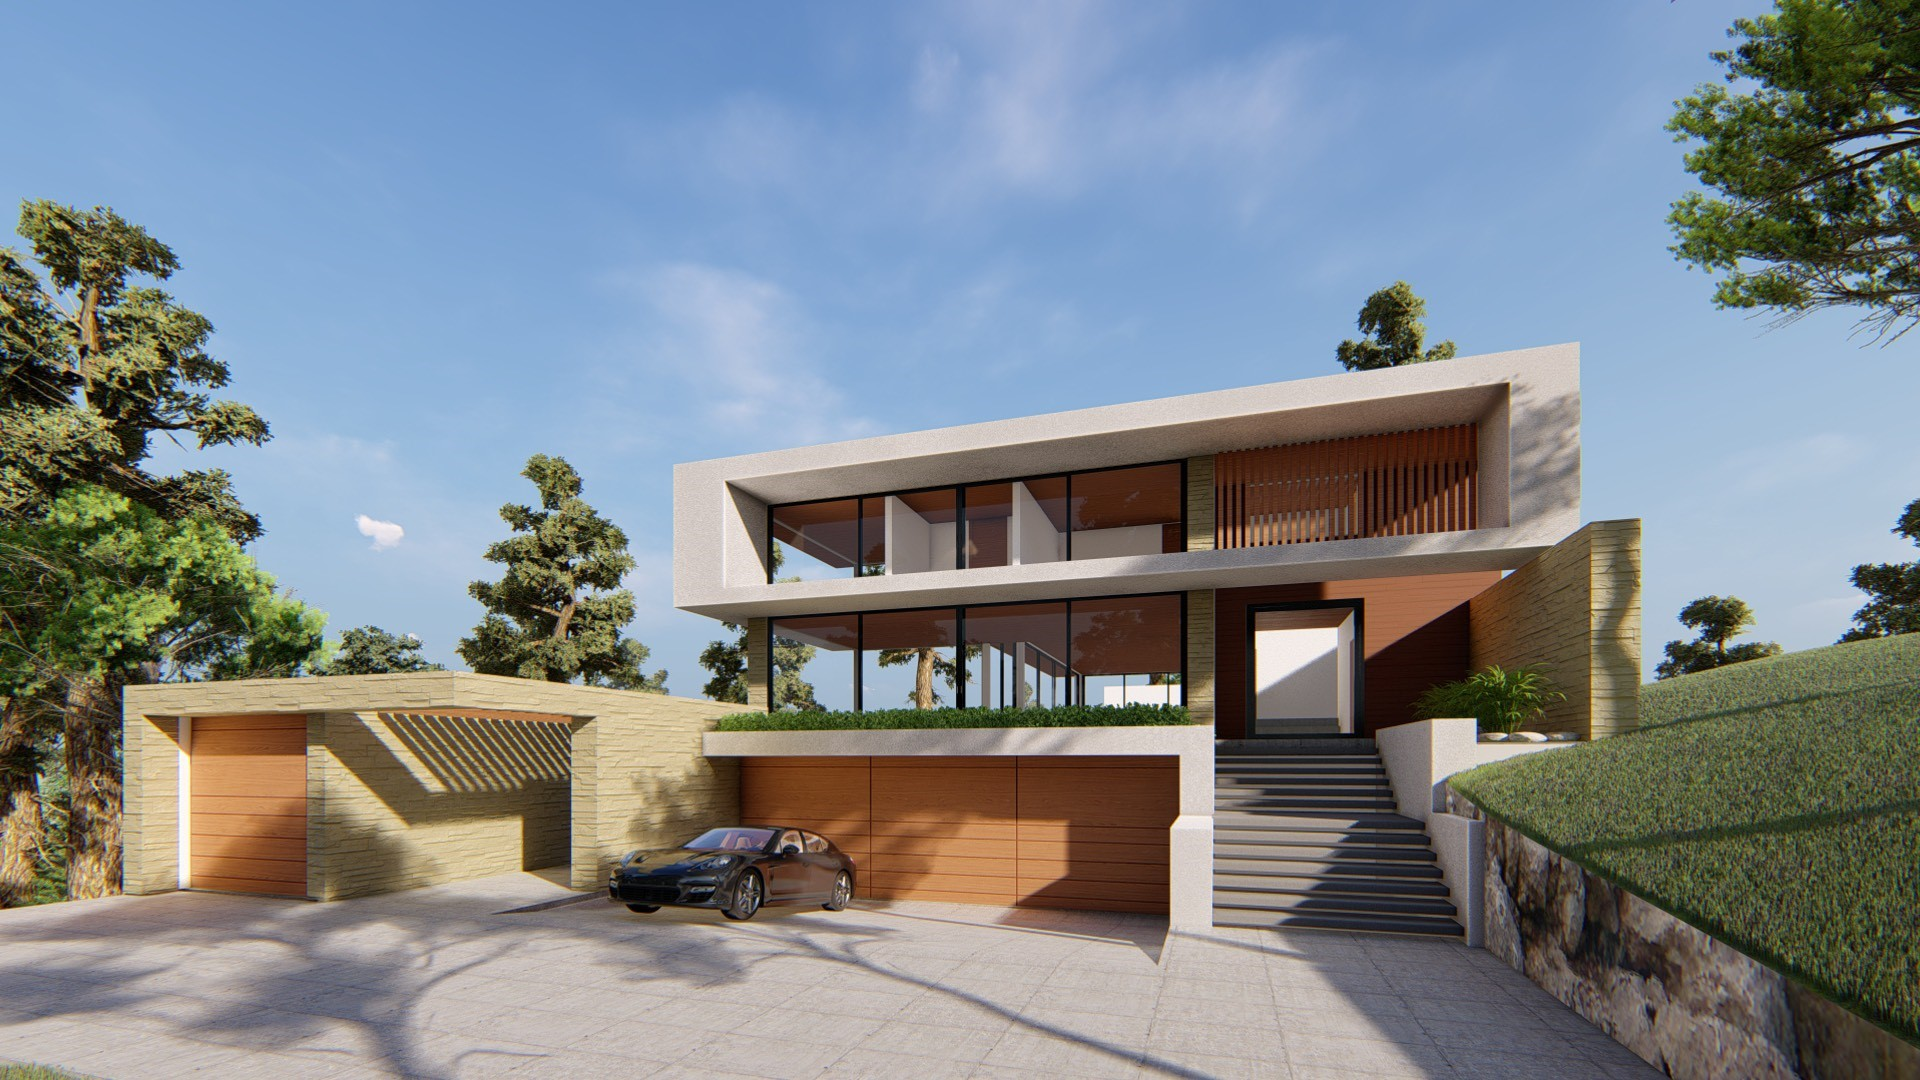 Entry view design,Los altos hills